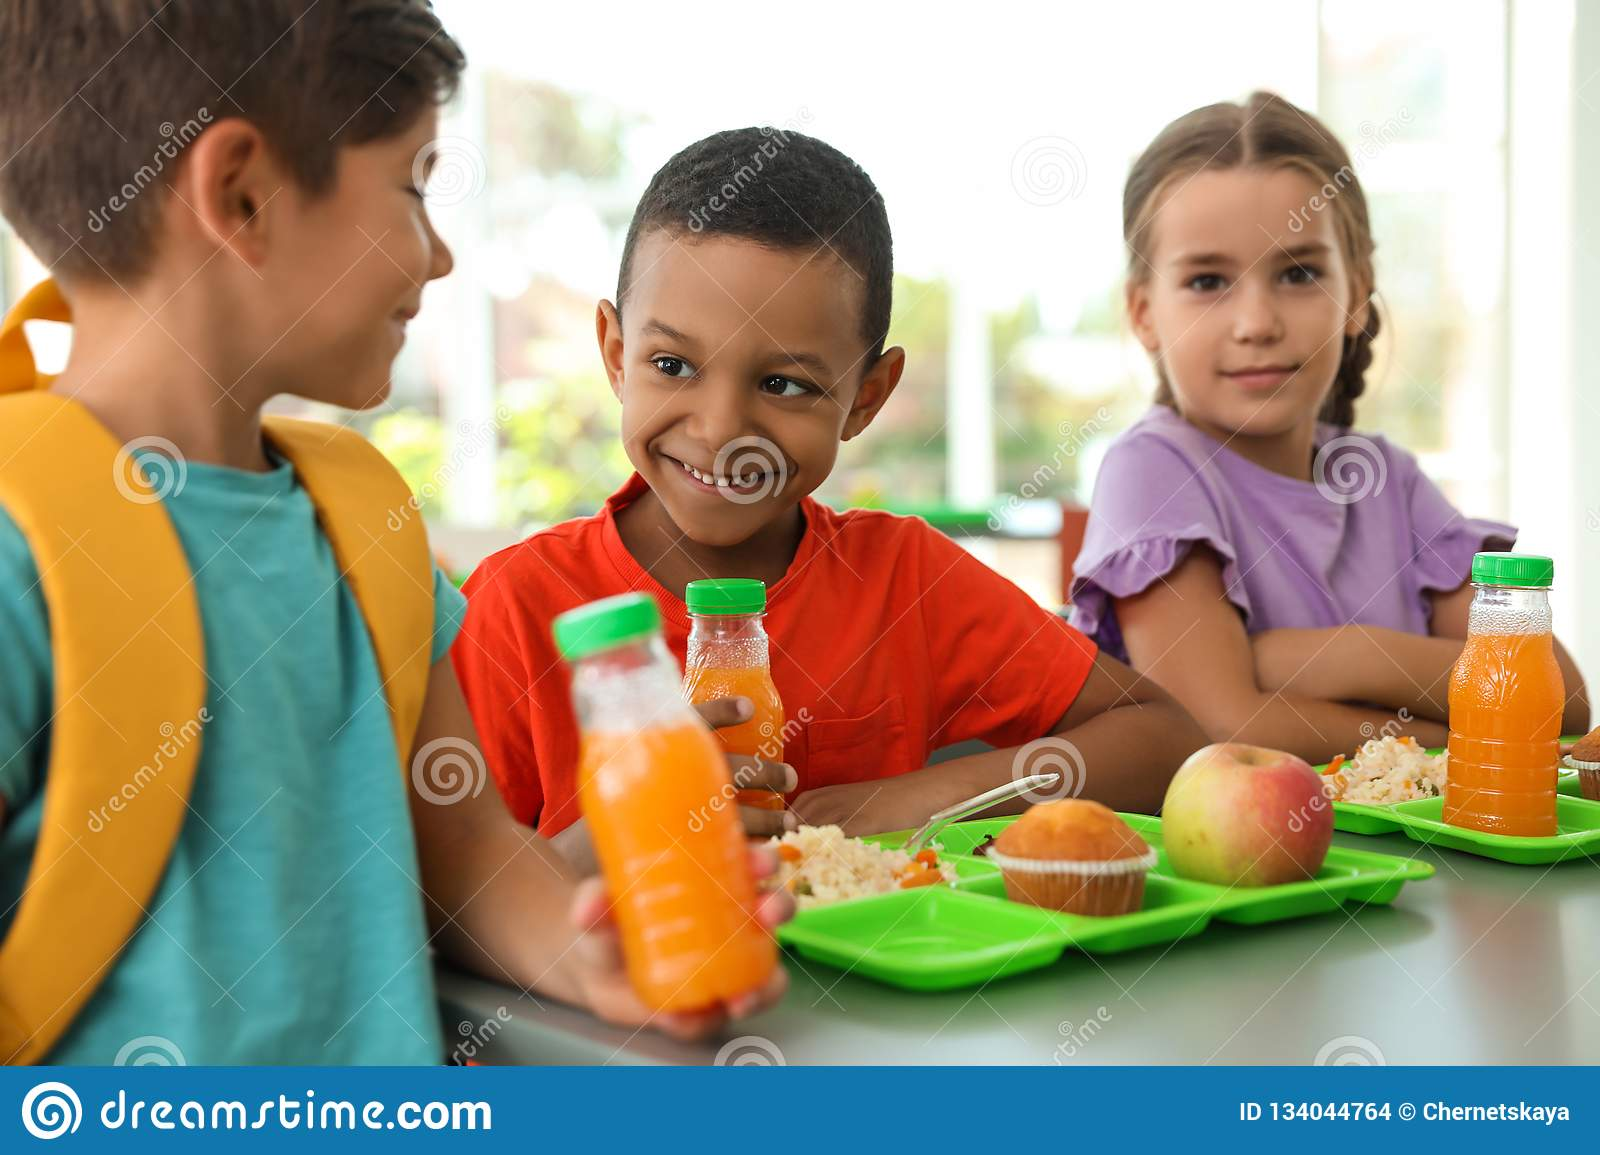 Children sitting at table and eating healthy food during break